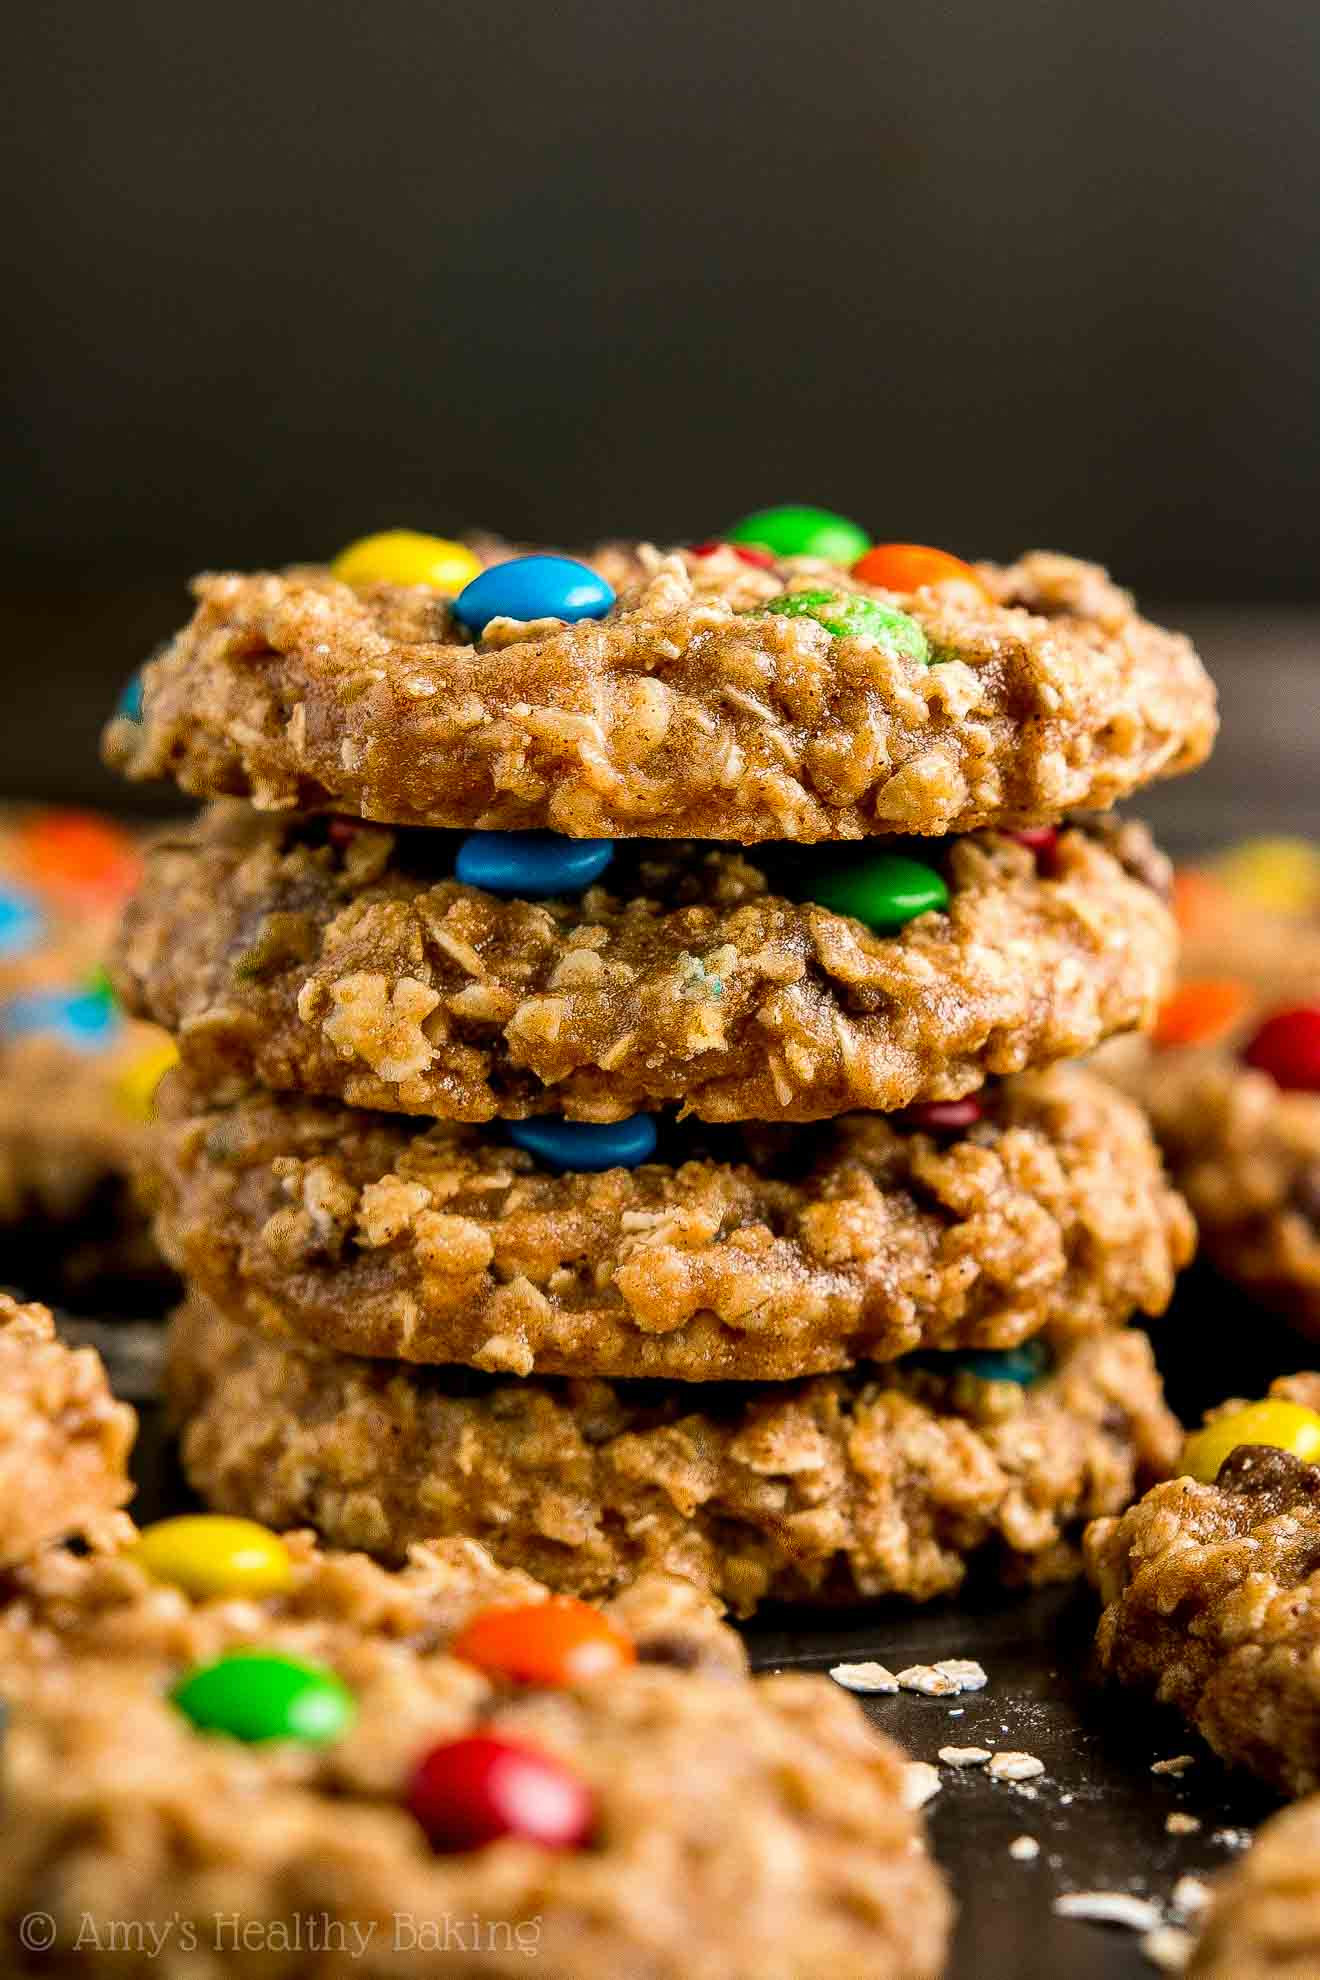 Healthy Gluten Free Chocolate Chip Peanut Butter Oatmeal Cookies with M&Ms